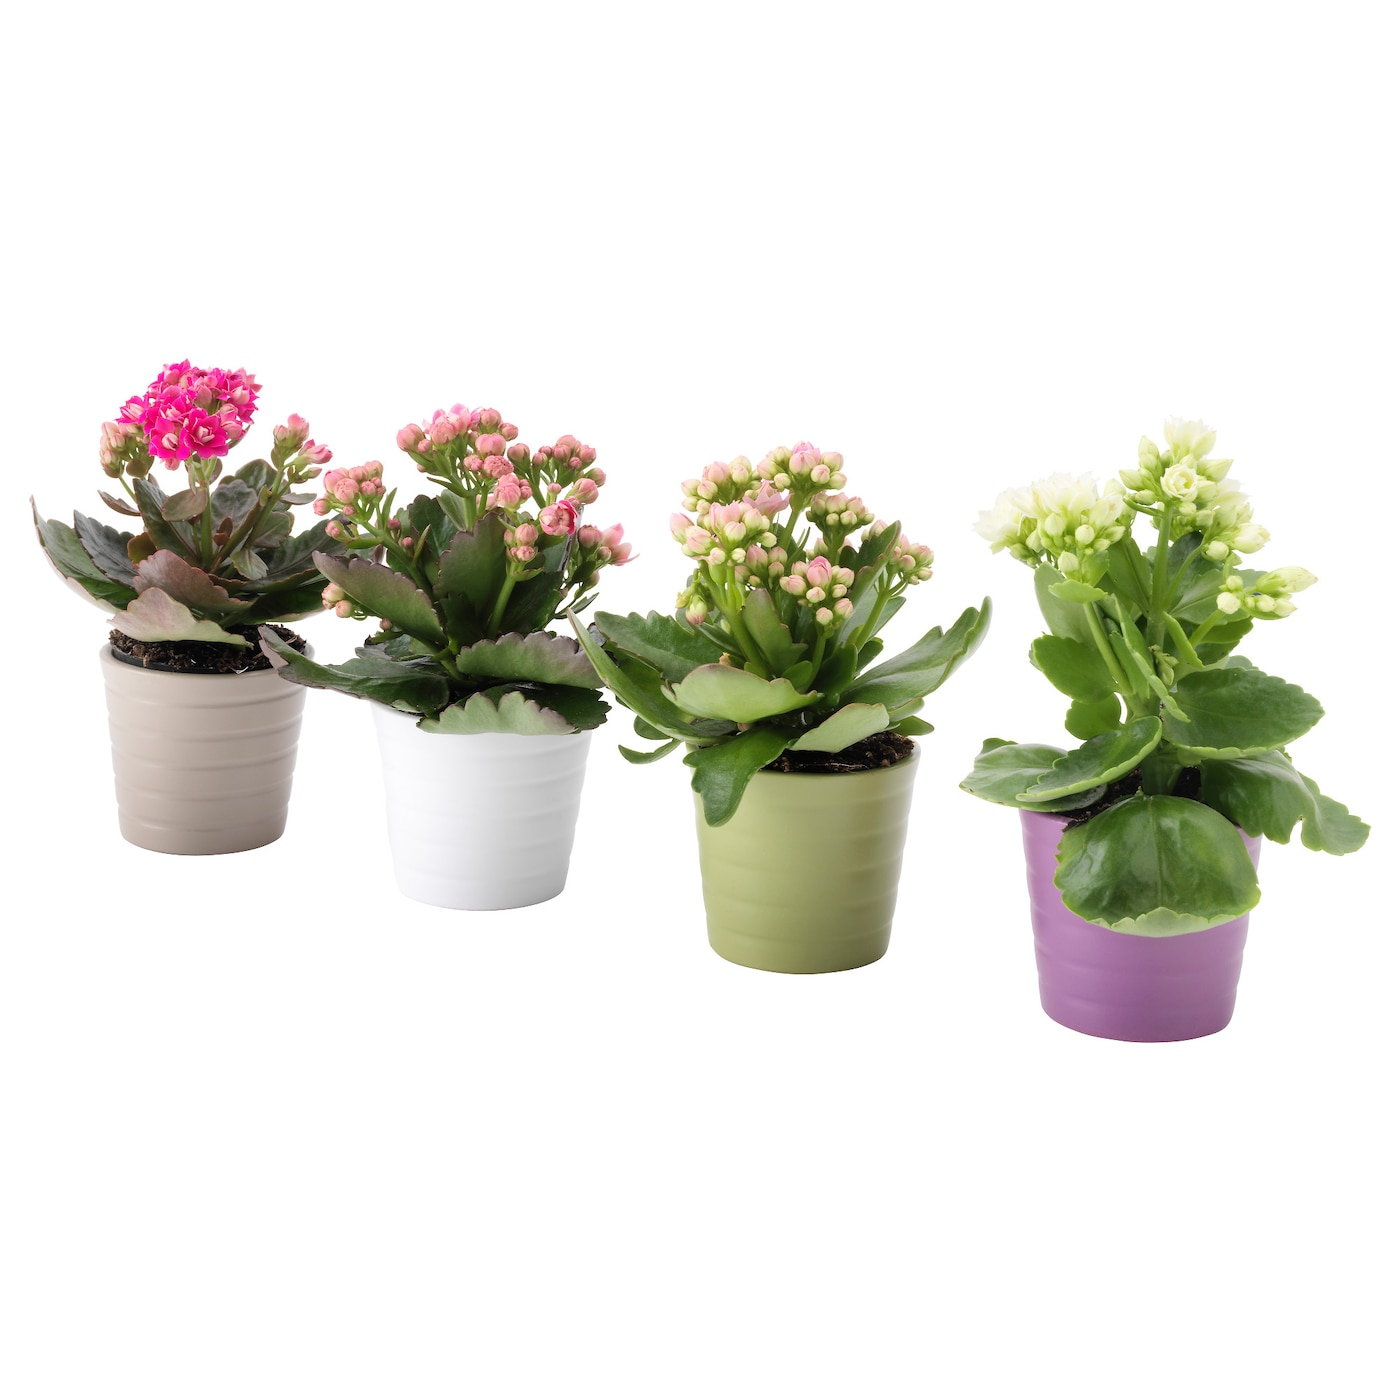 IKEA KALANCHOE potted plant with pot